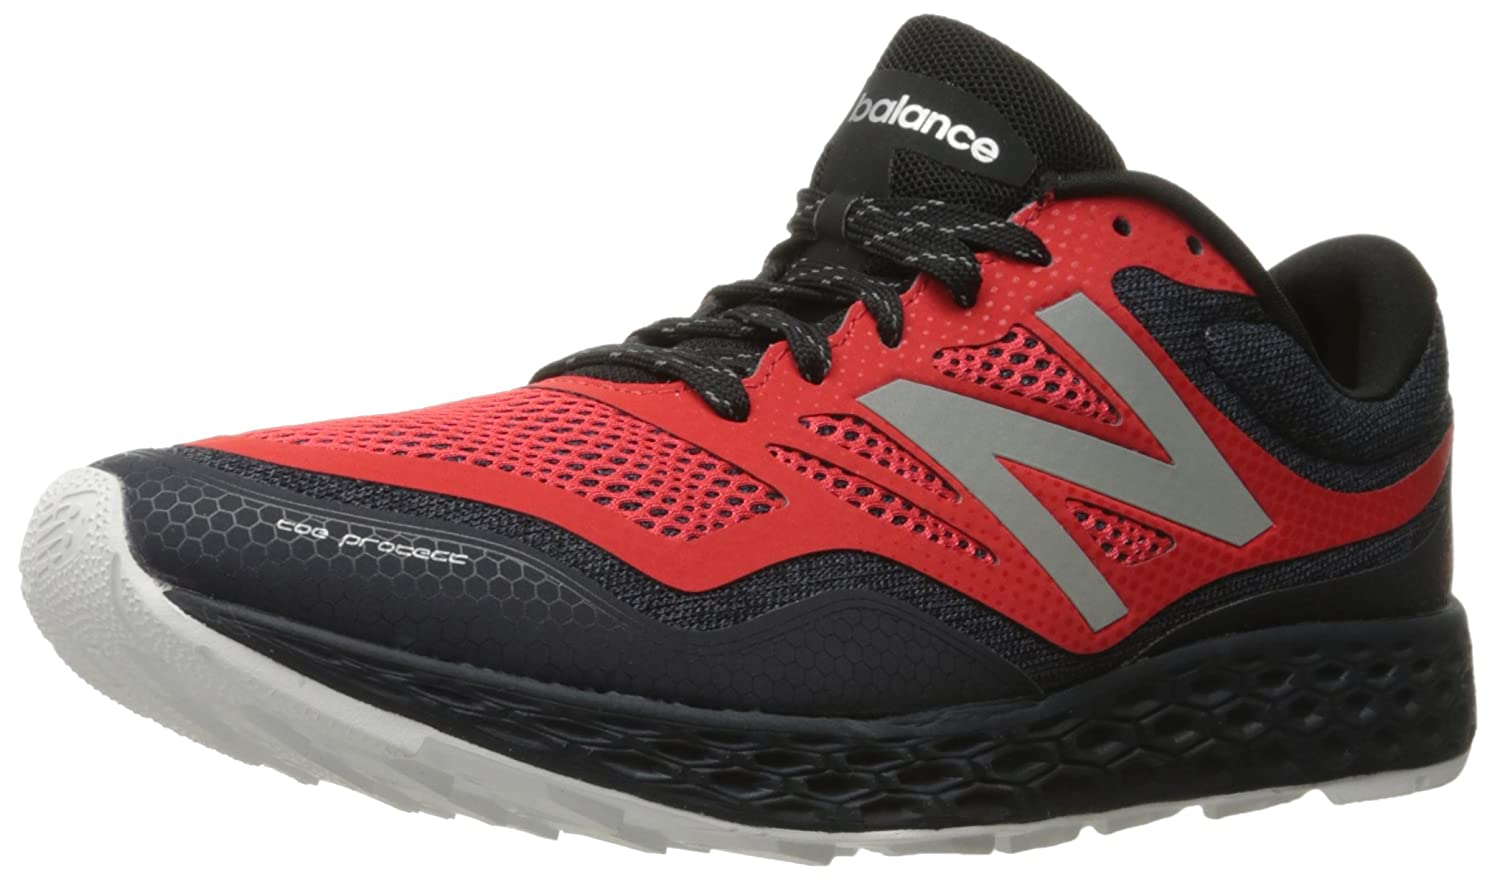 SCARPA RUNNING TRIAL FRESH FOAM GOBI TRAIL 7,5 D(M) US|Negro/Rojo